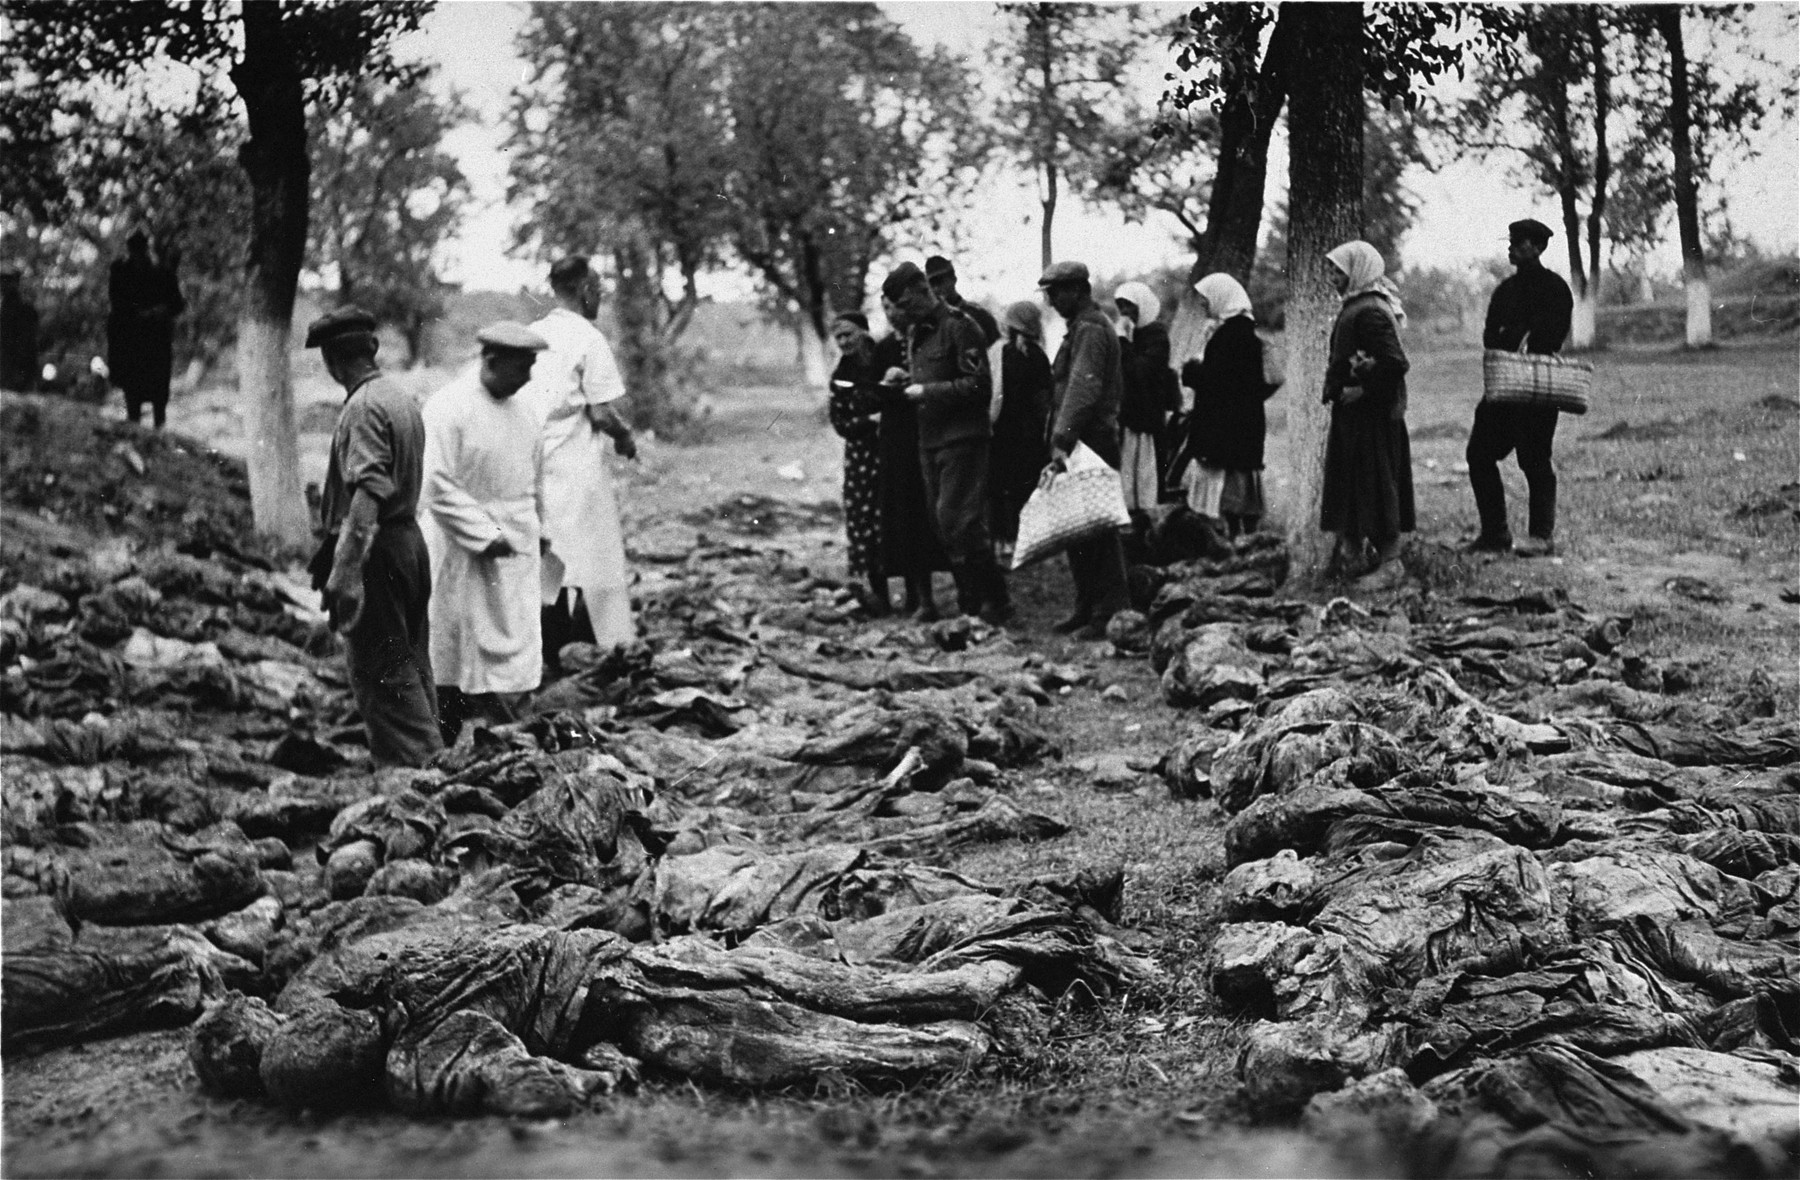 Austrian civilians, survivors, and medical personnel examine prisoners' corpses exhumed at Gunskirchen.